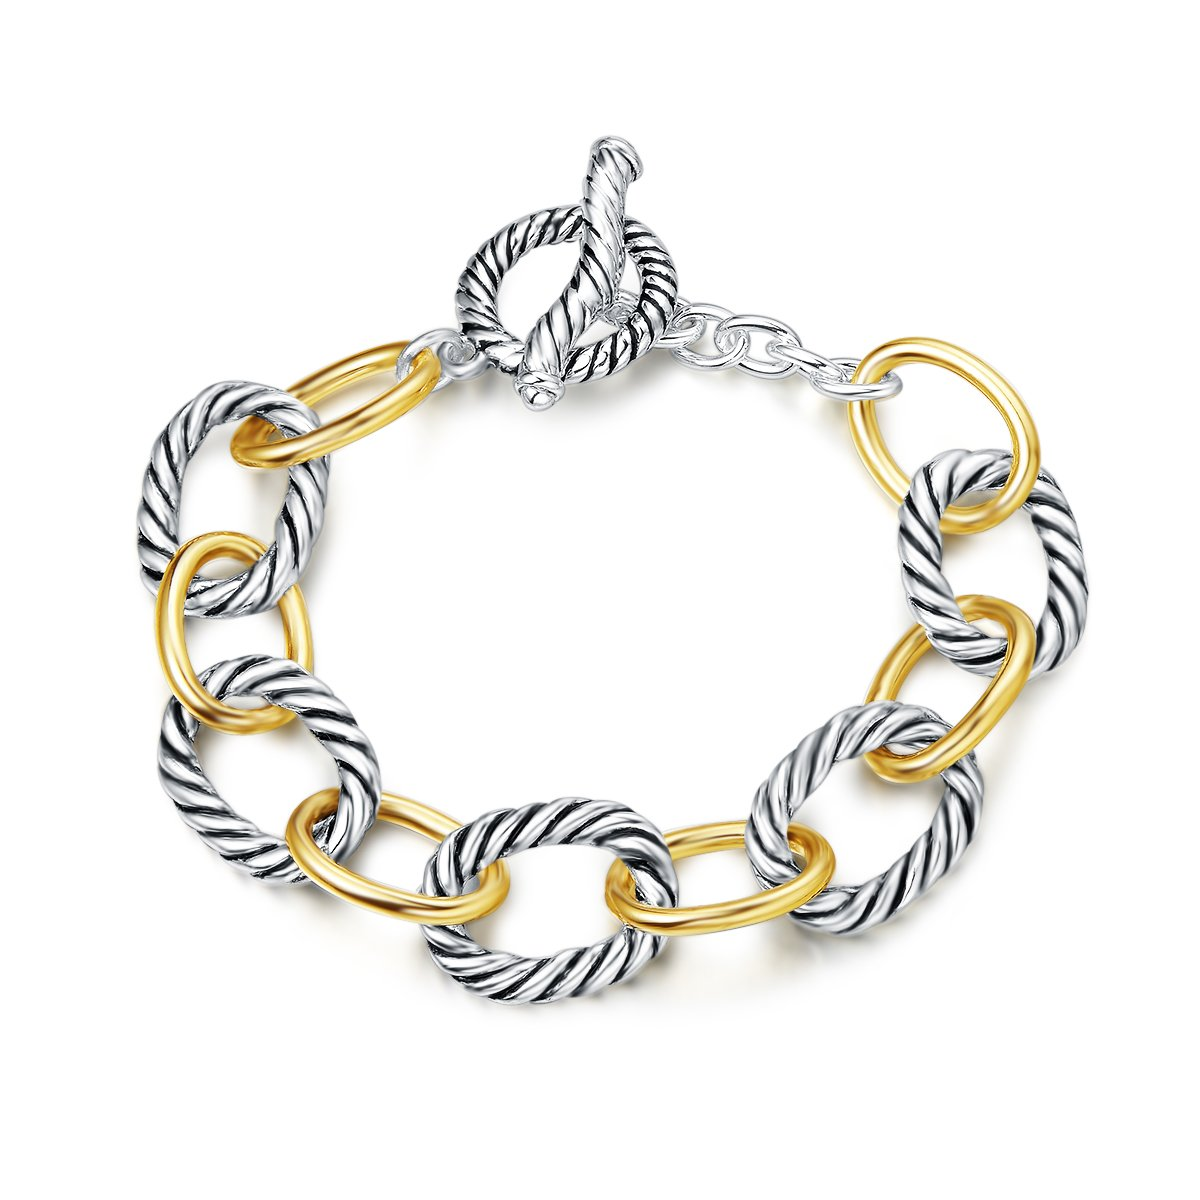 UNY Bracelet Designer Brand Inspired Antique Women Jewelry Cable Wire Vintage Valentine Christmas Gift UNY17077